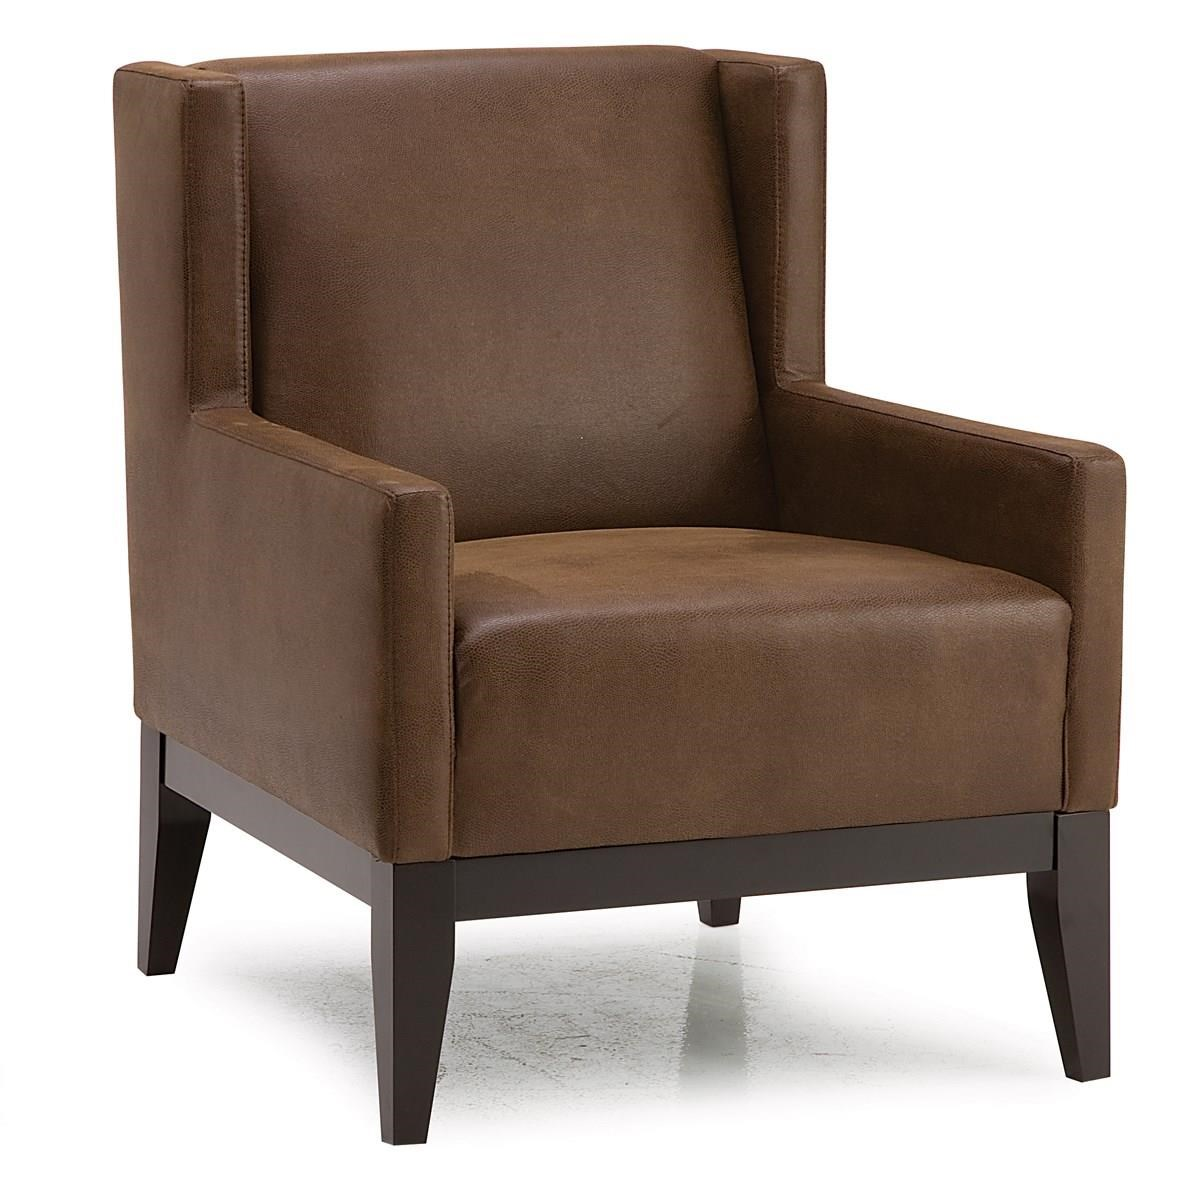 Helio Contemporary Wing Back Accent Chair W/ 2 Pillows By Palliser